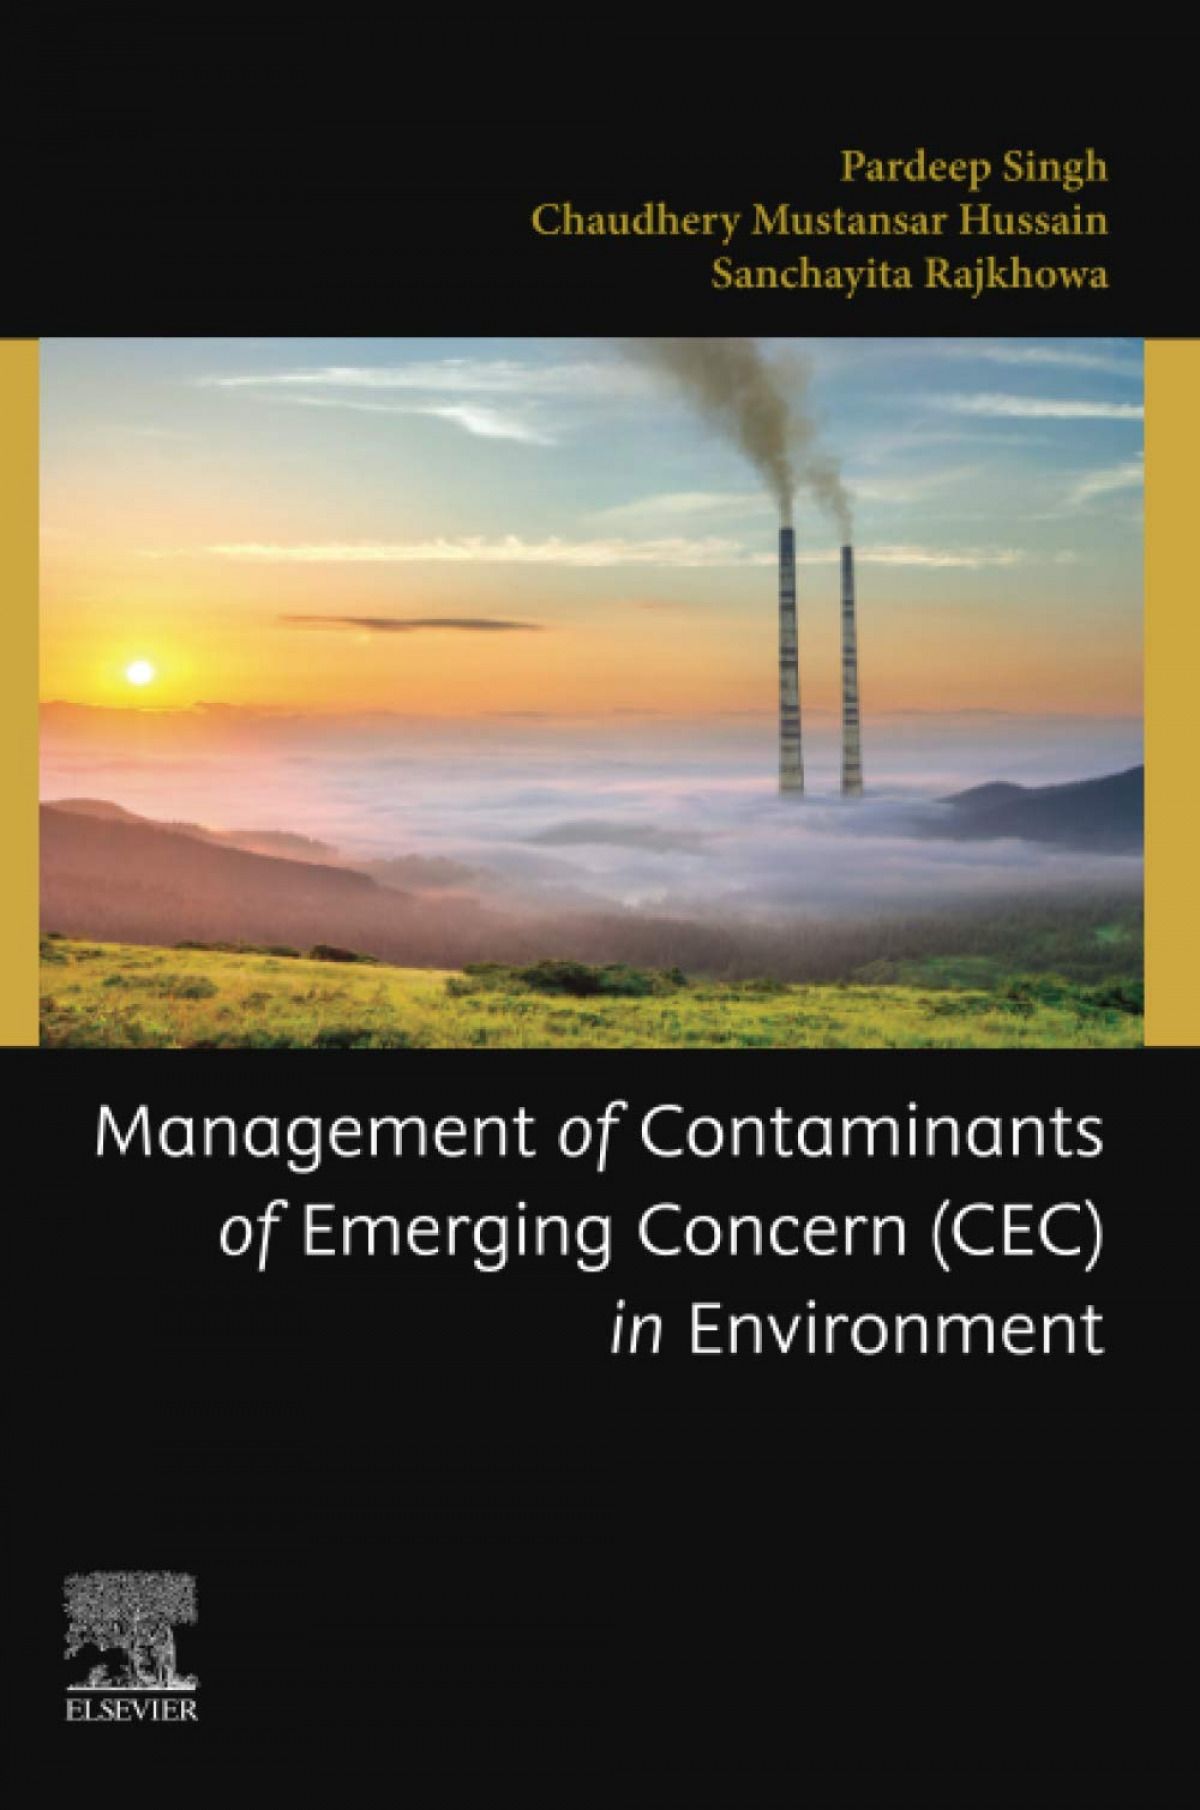 MANAGEMENT OF CONTAMINANTS OF EMERGING CONCERN ENVIRONMENT